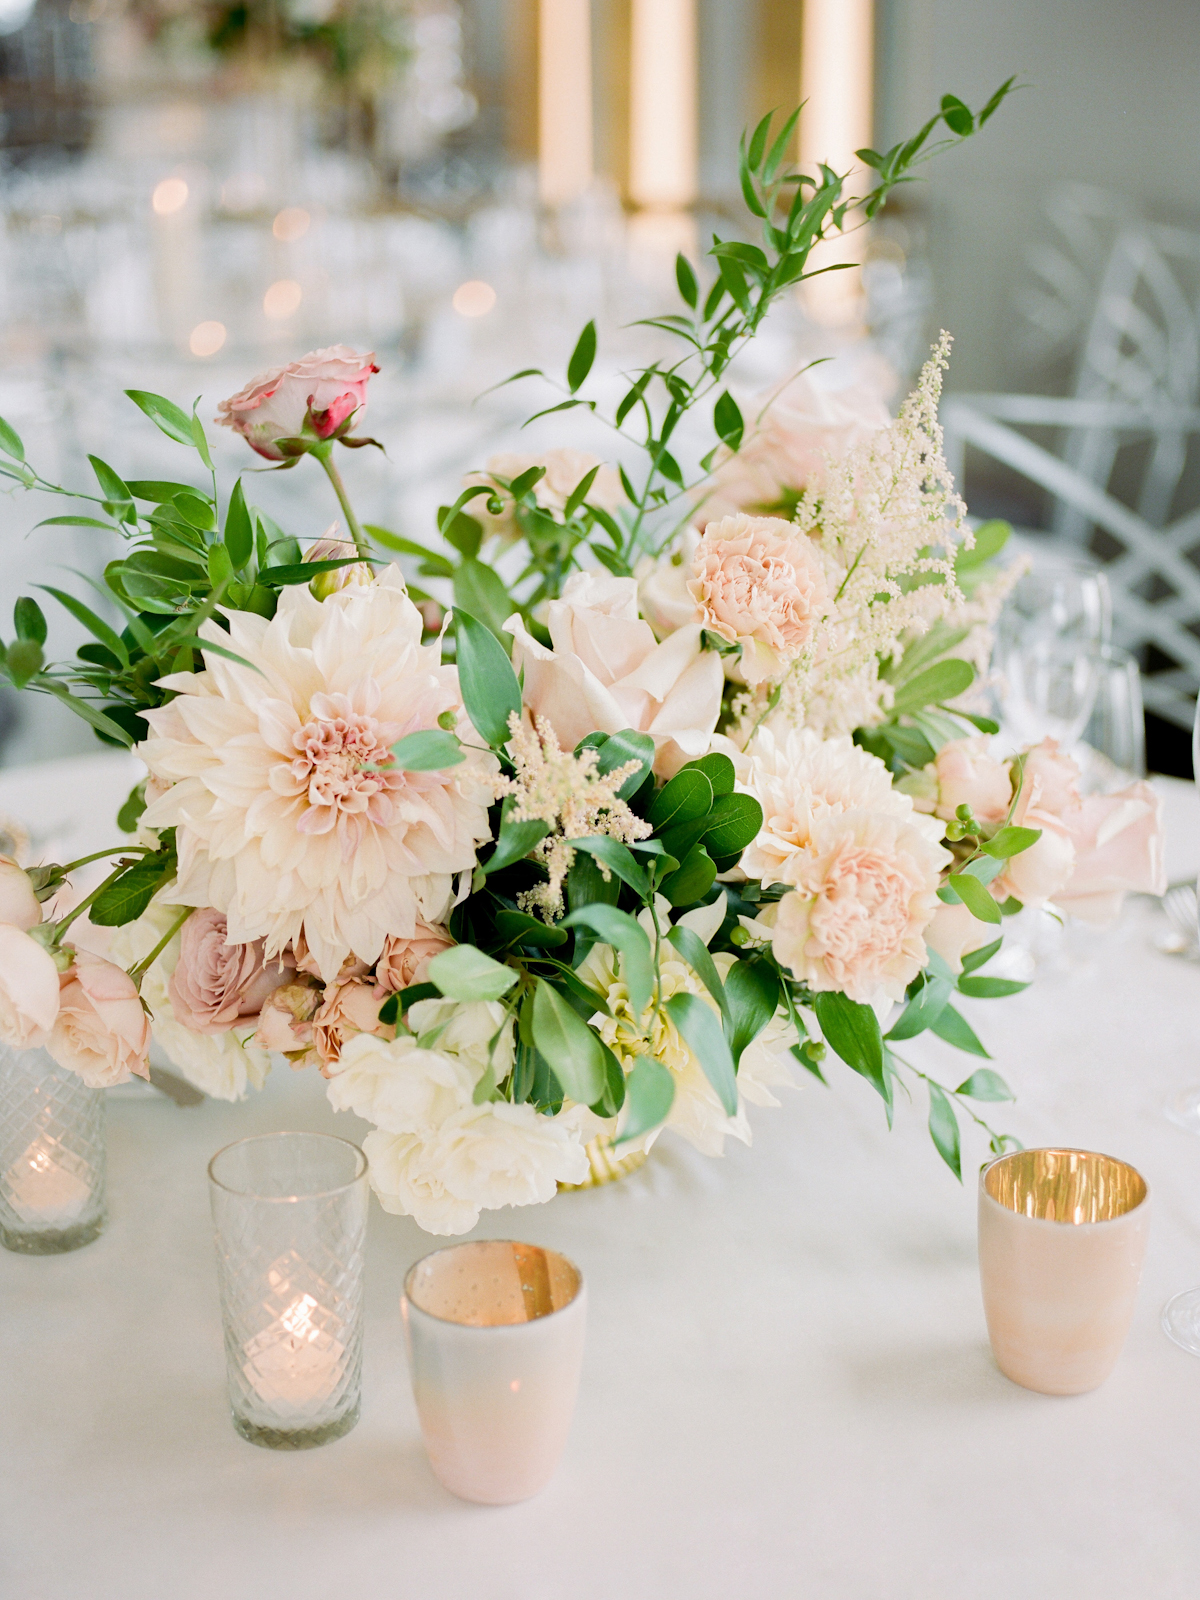 Rainbow Room Wedding, planner Ang Weddings and Events, photography Heather Waraksa, florals Poppies and Posies